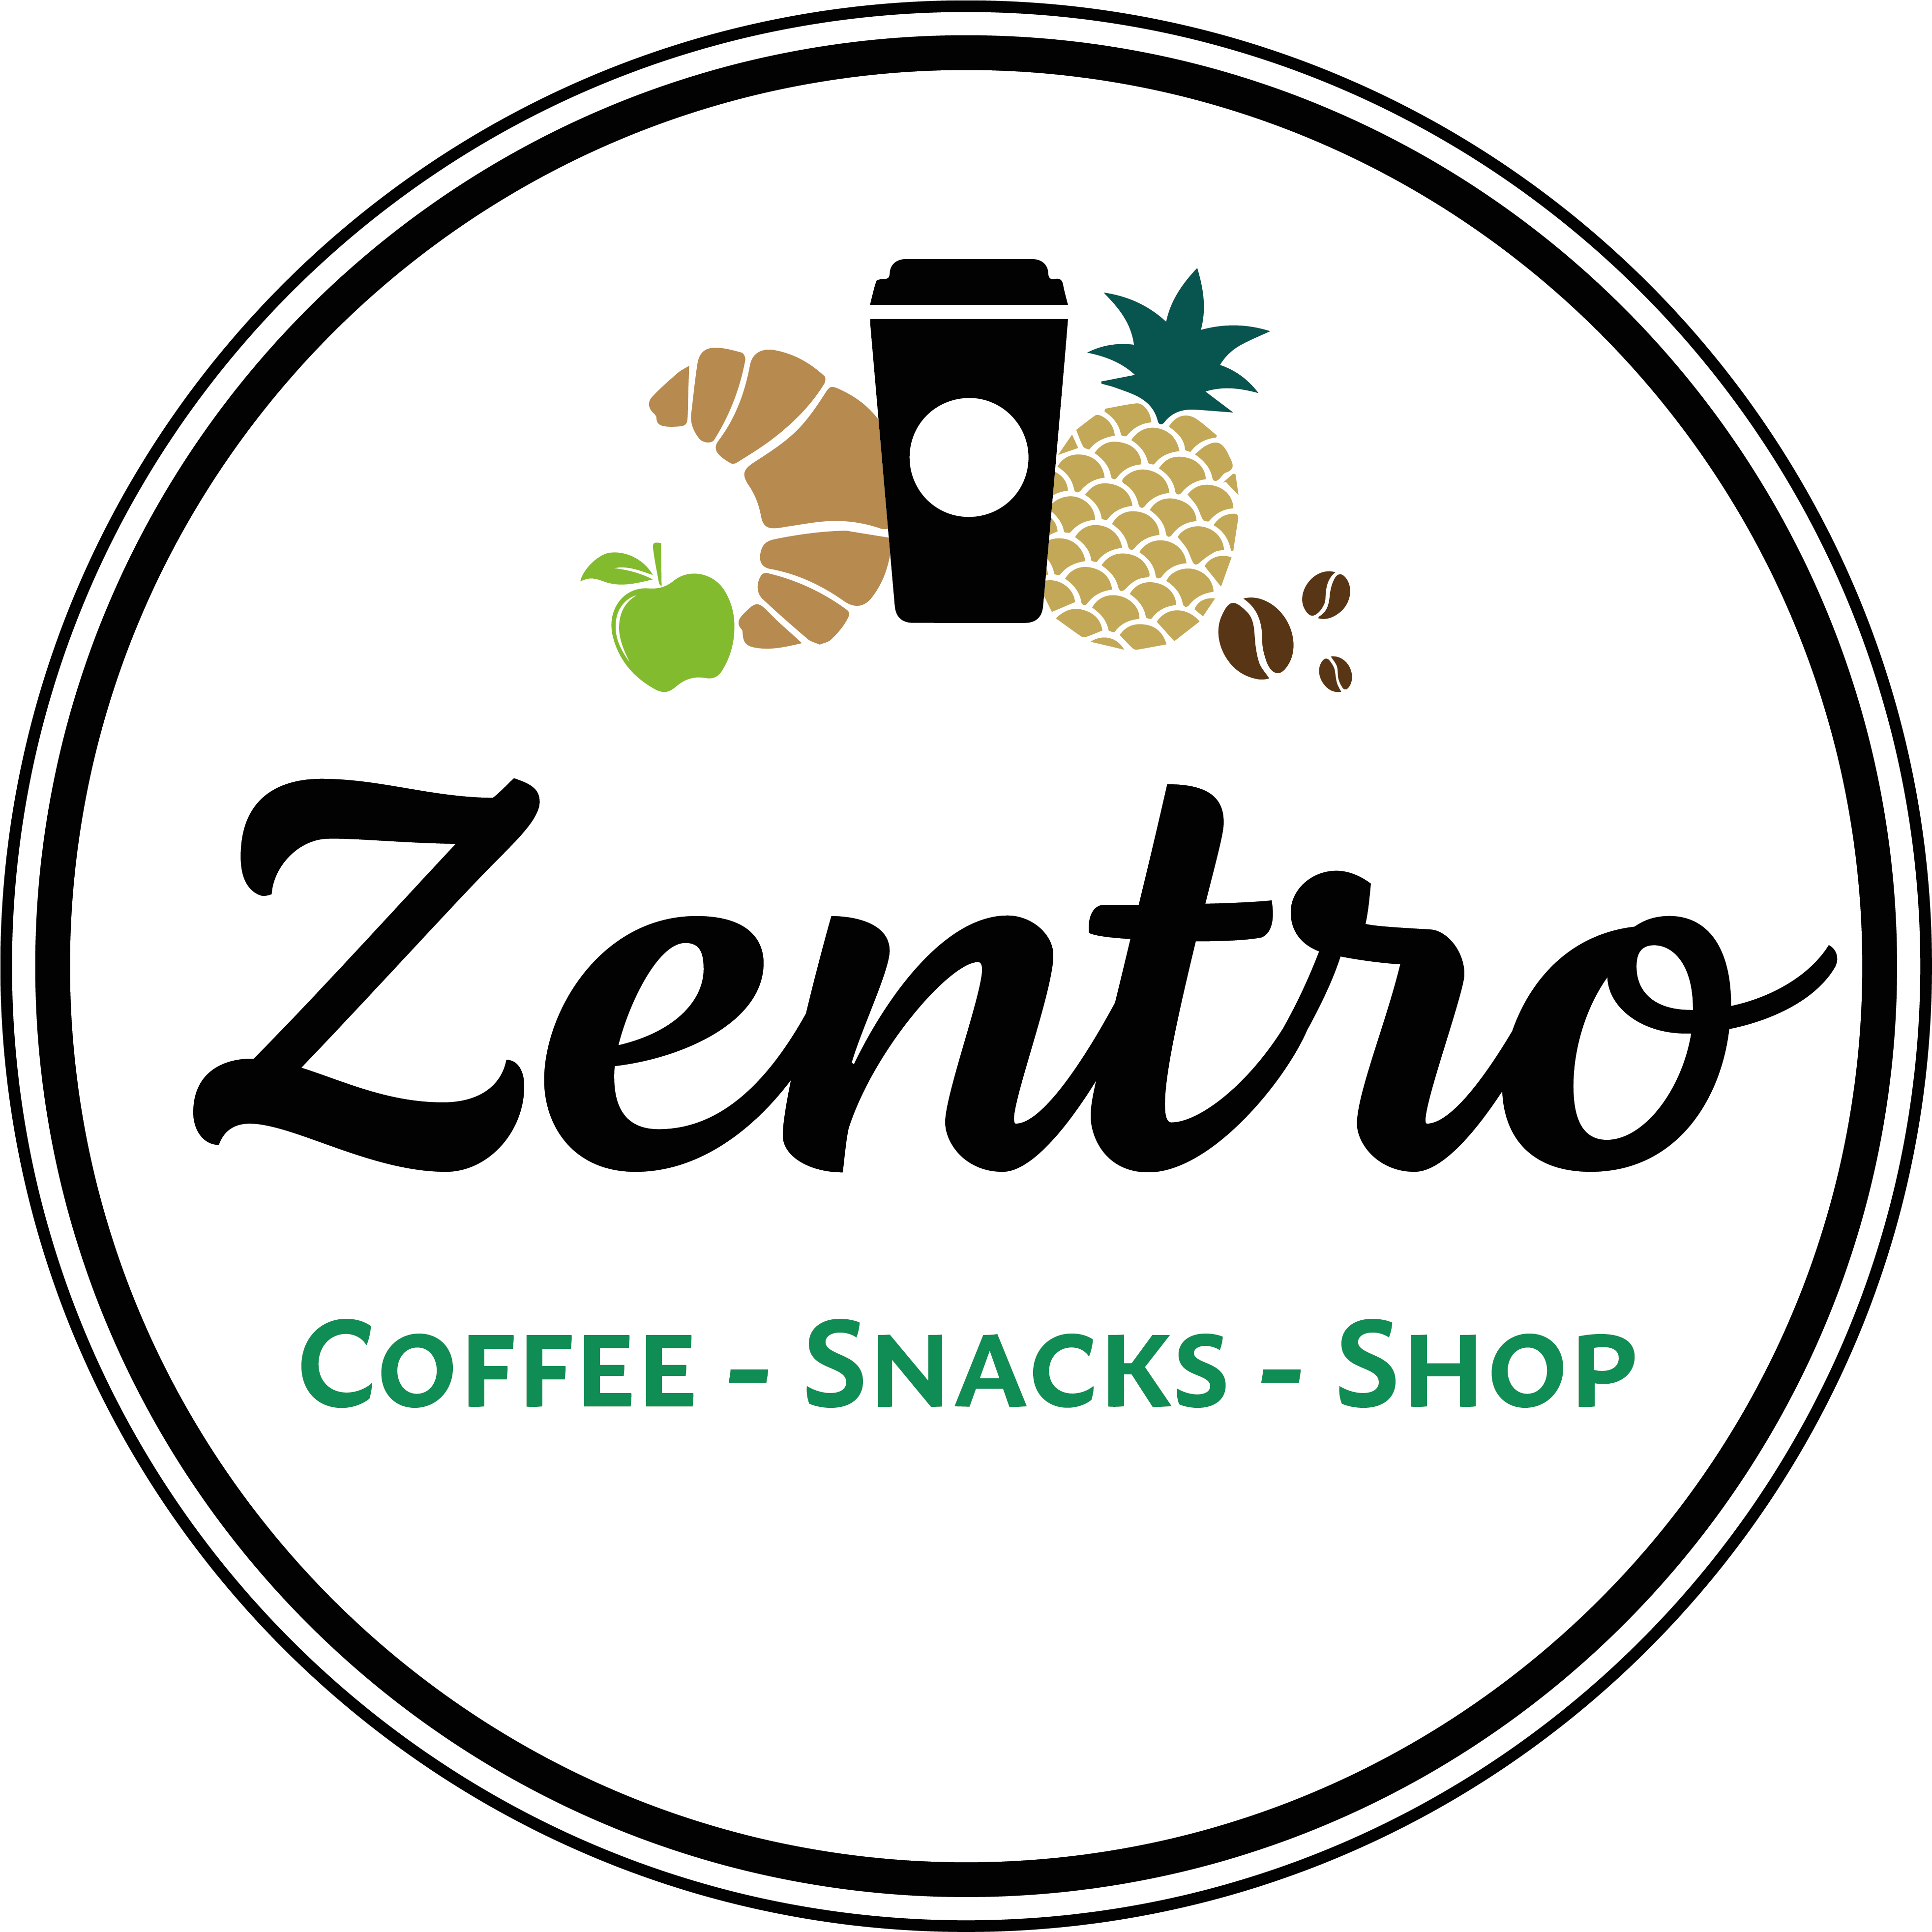 Zentro - Coffee, Snacks und Shop